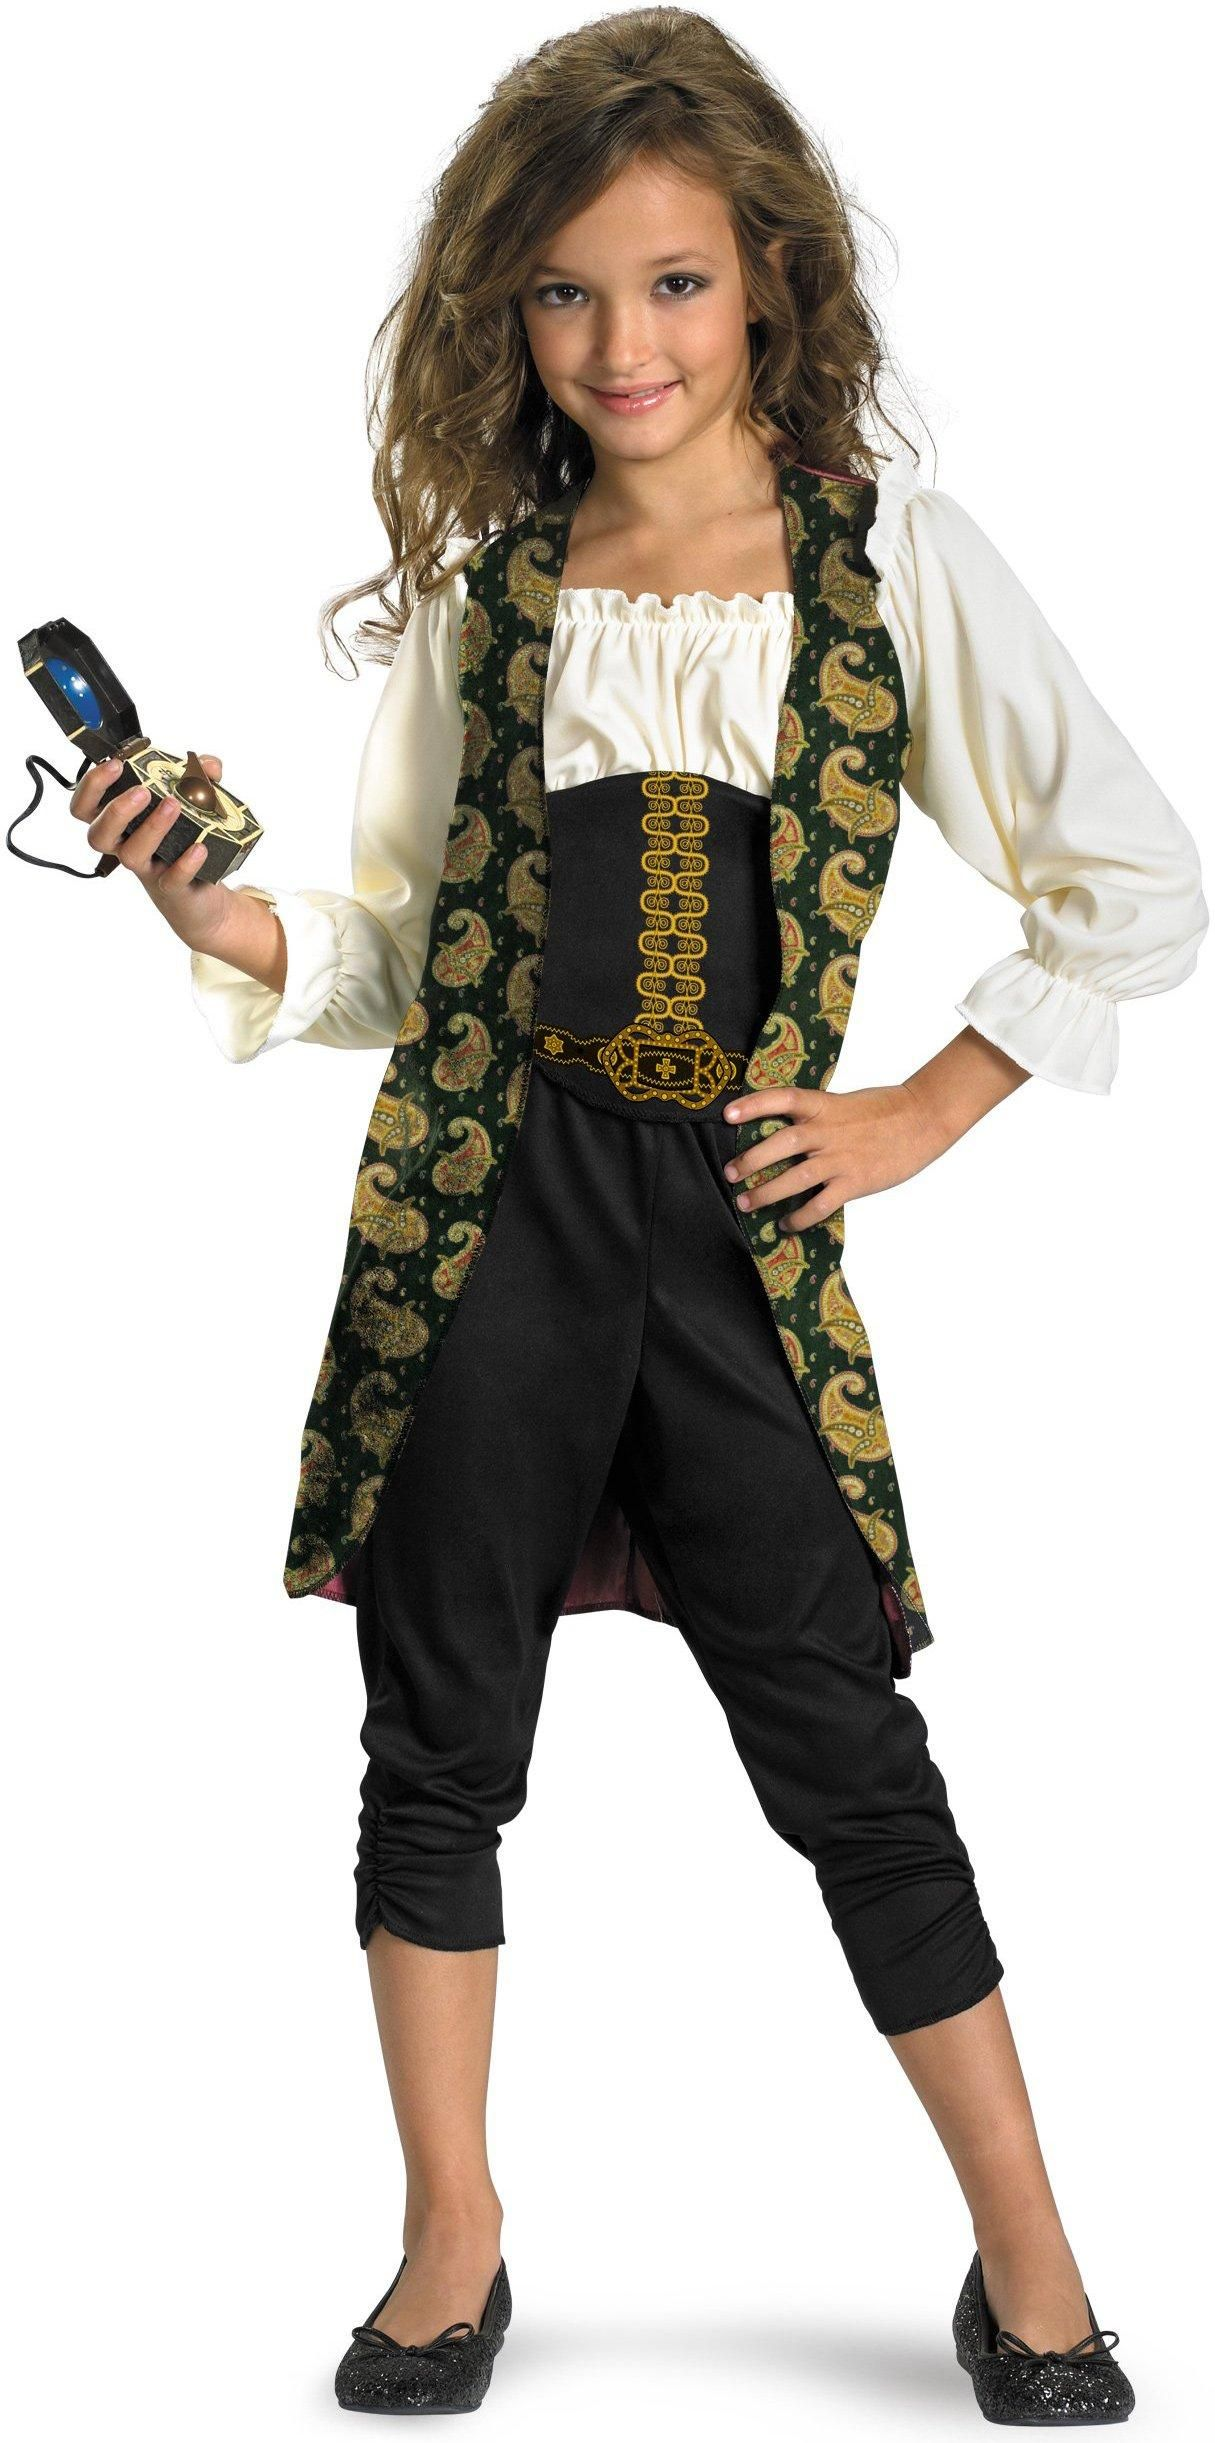 Pirates of the Caribbean 4 On Stranger Tides - Angelica Child Costume from  Buycostumes.com 7d7fa43d45cc8